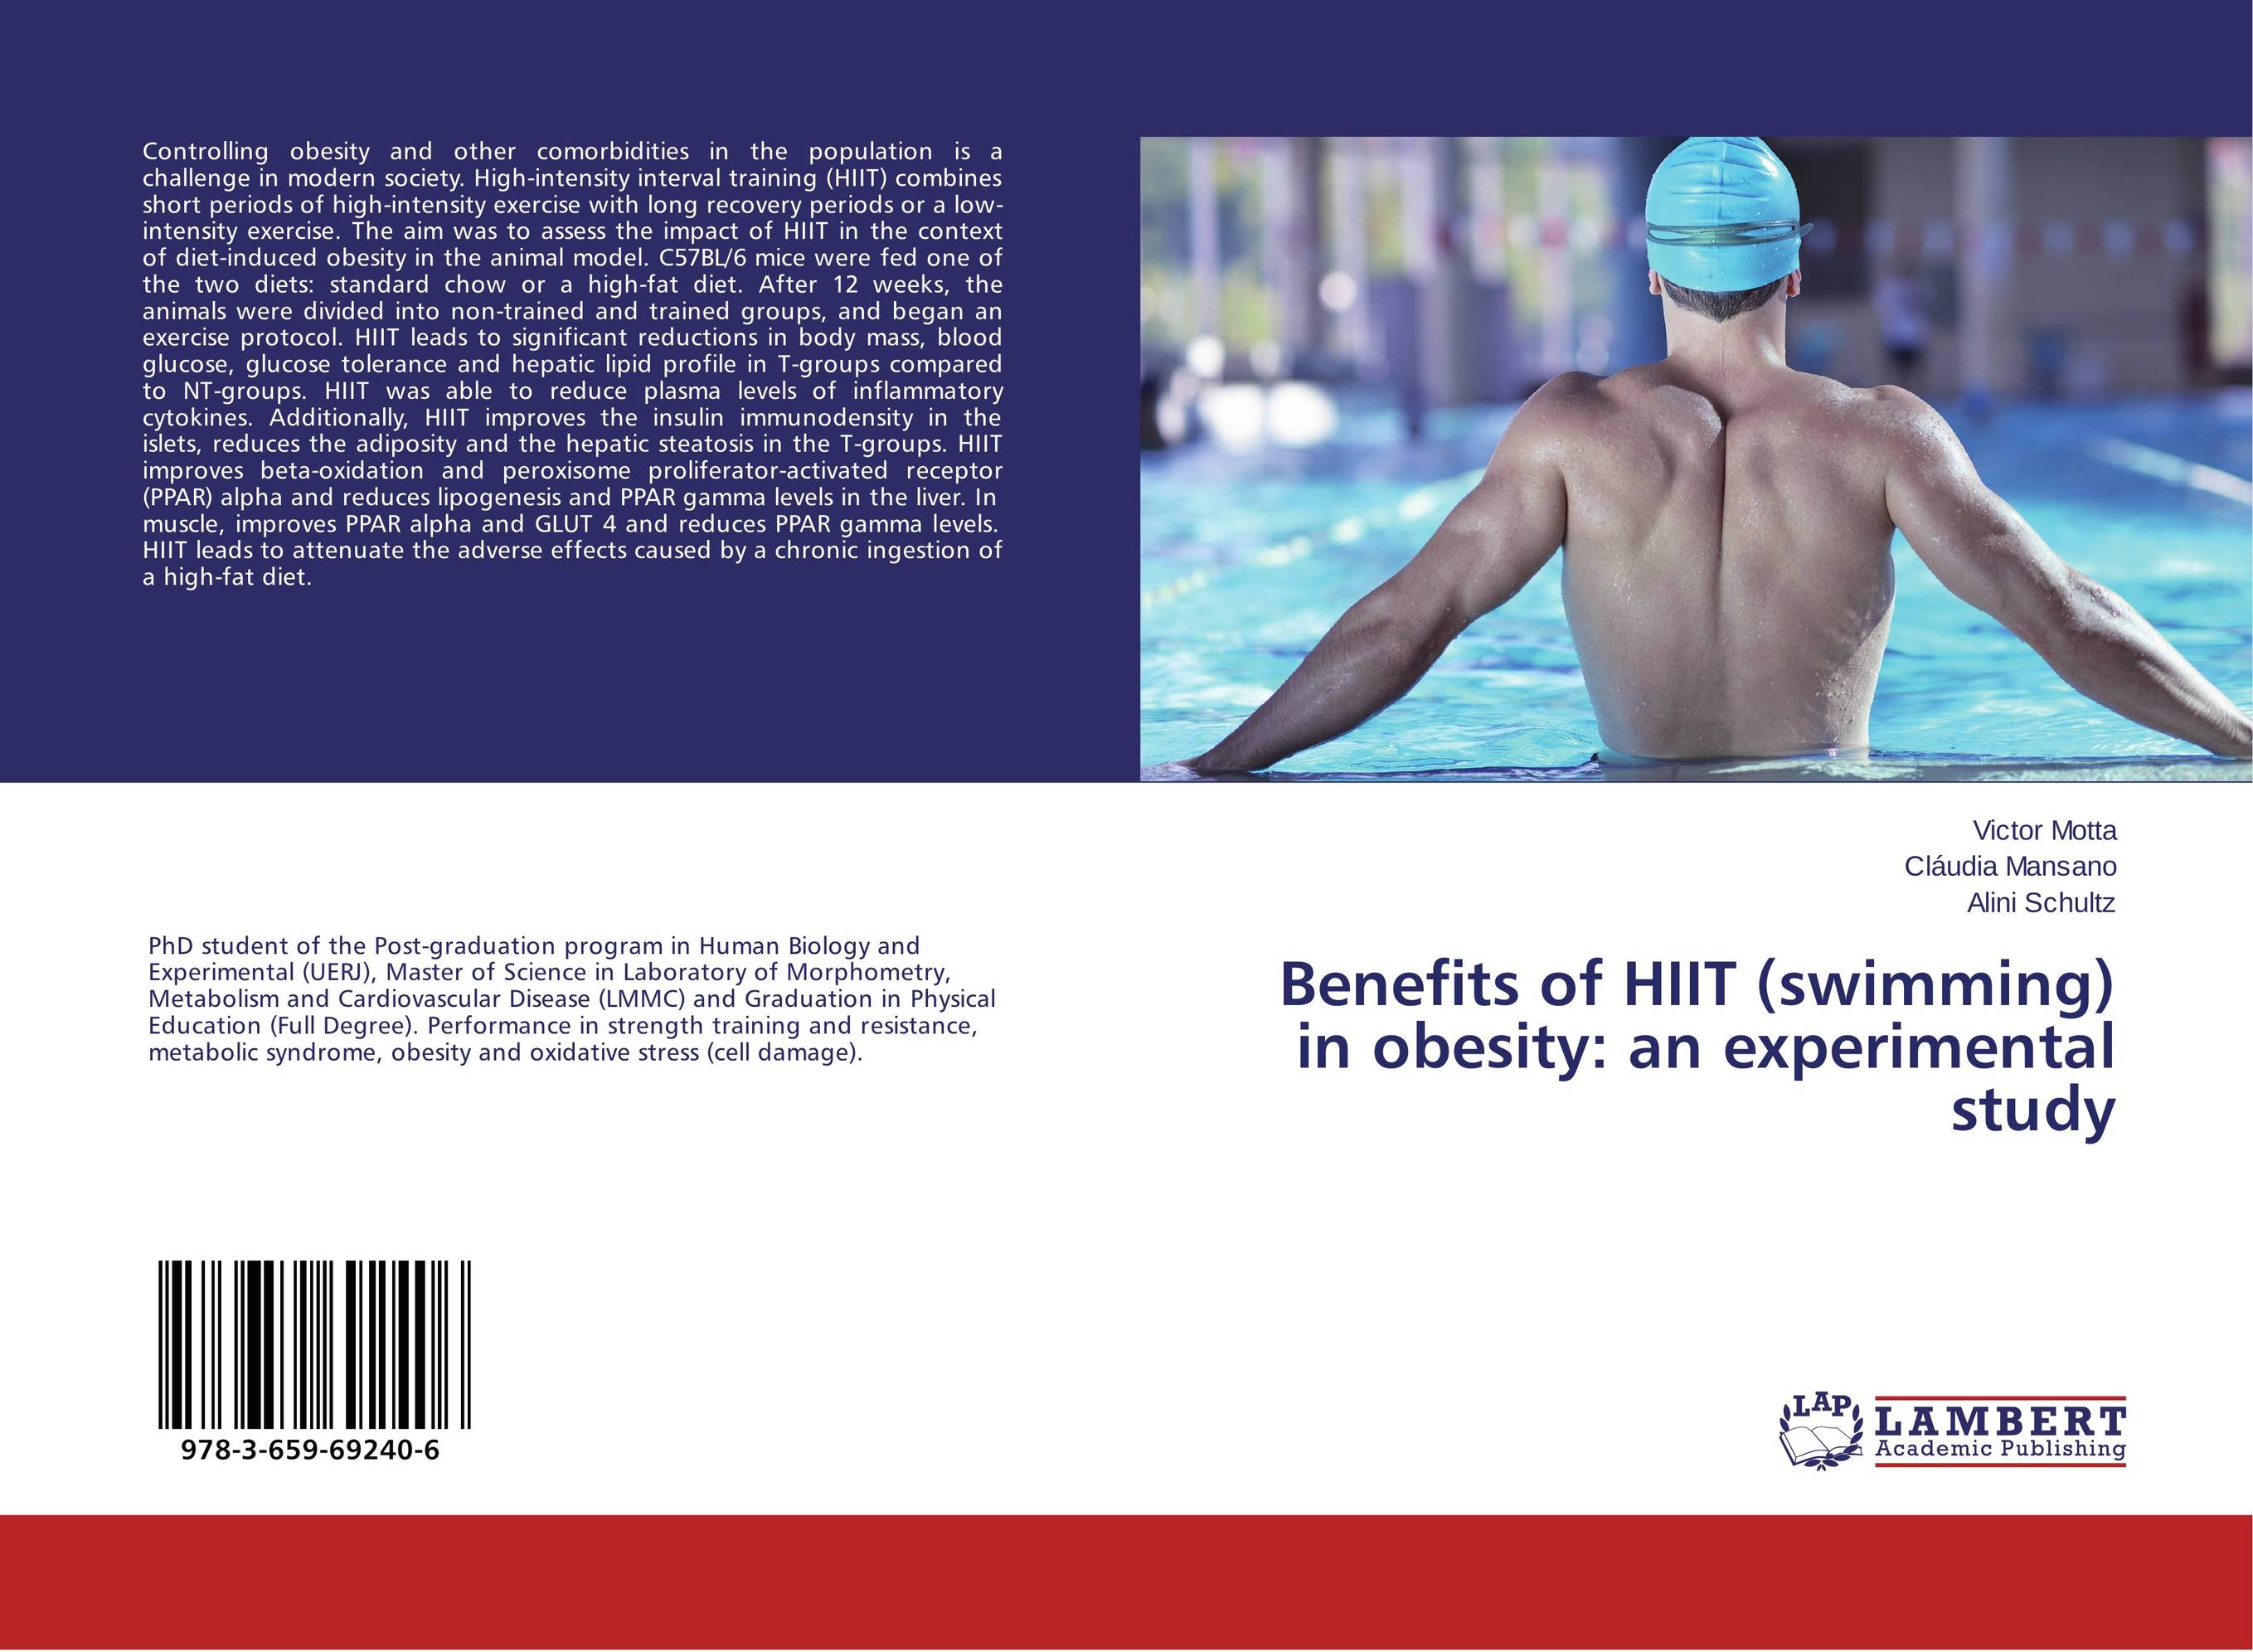 Benefits of HIIT (swimming) in obesity: an experimental study effects of moderate intensity exercise on lipoprotein lipid profile